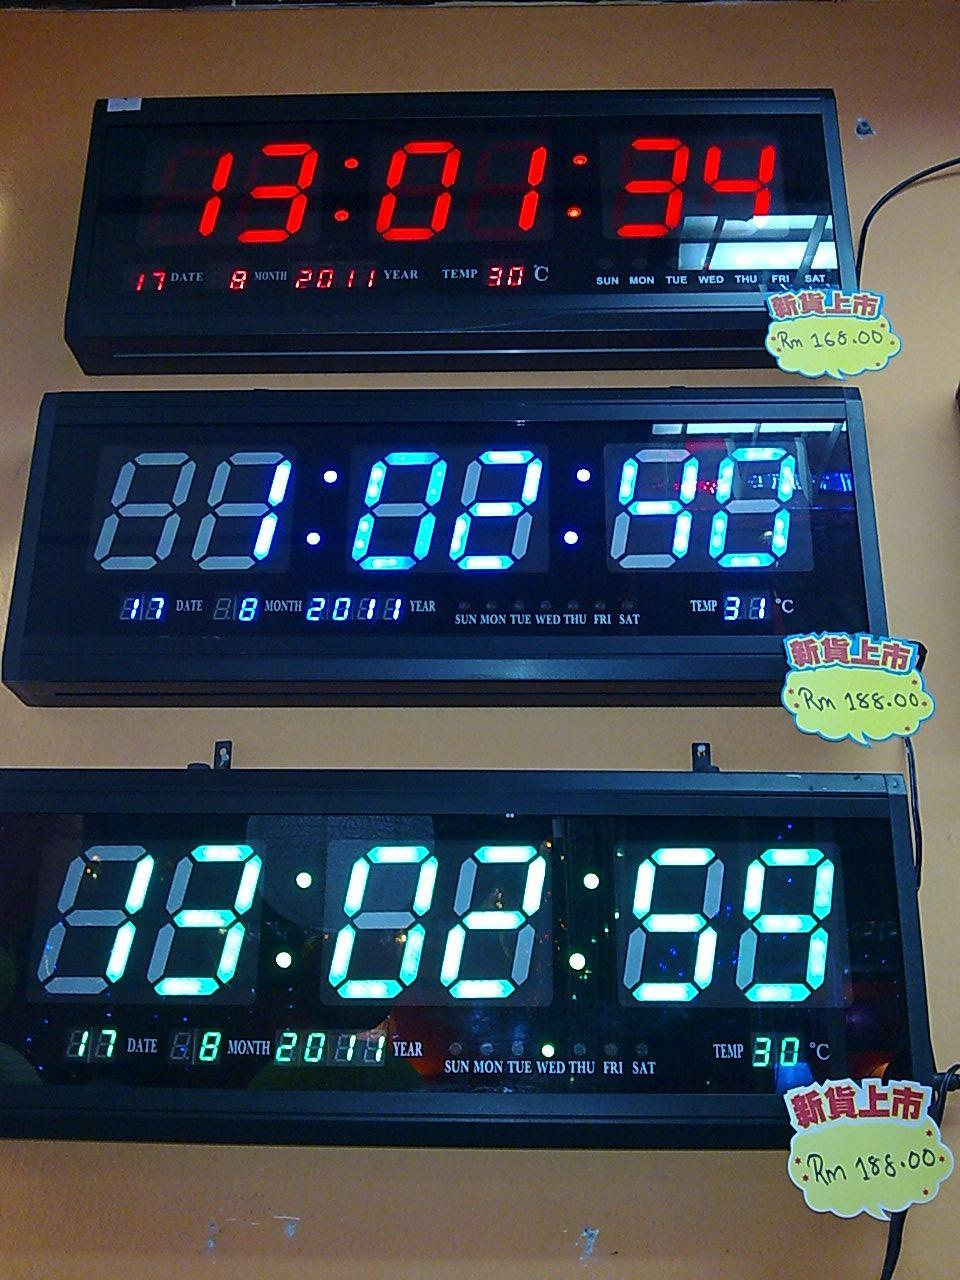 Digital led wall clock auto calendar end 4 26 2018 5 15 pm - Digital illuminated wall clocks ...